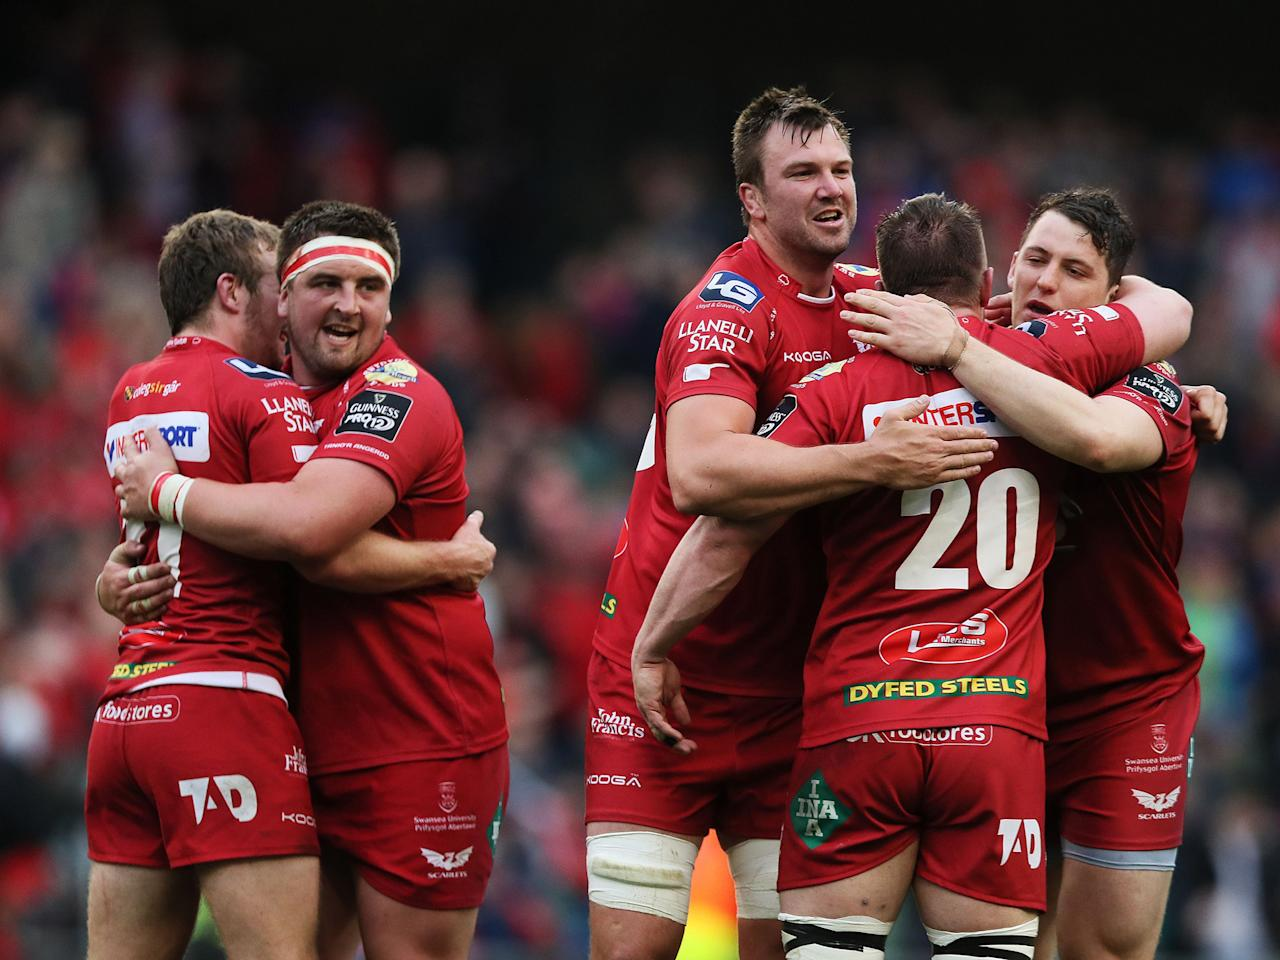 Scarlets put on brilliant display to defeat Munster and take Pro12 title